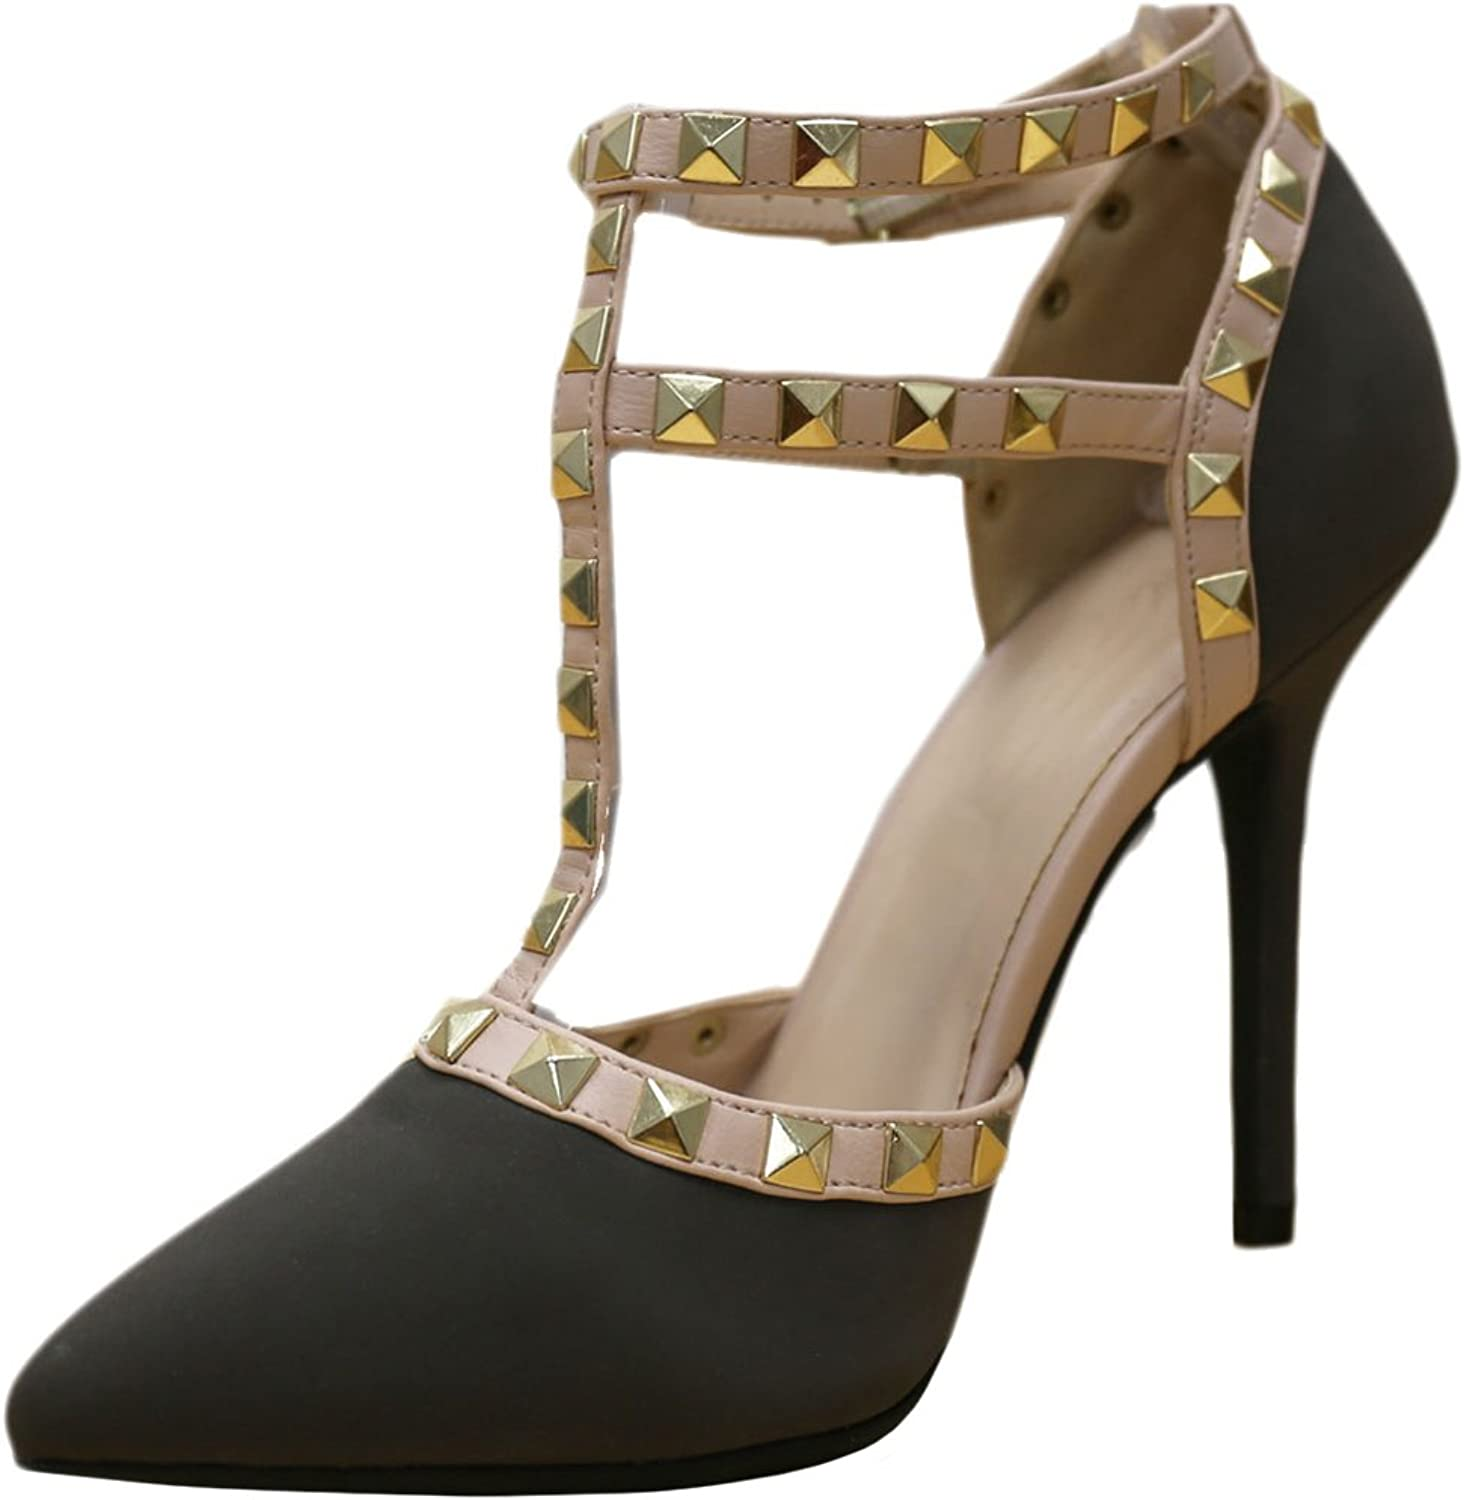 Cambridge Select Women's Closed Pointed Toe T-Strap Caged Studded Buckle High Heeled Pump